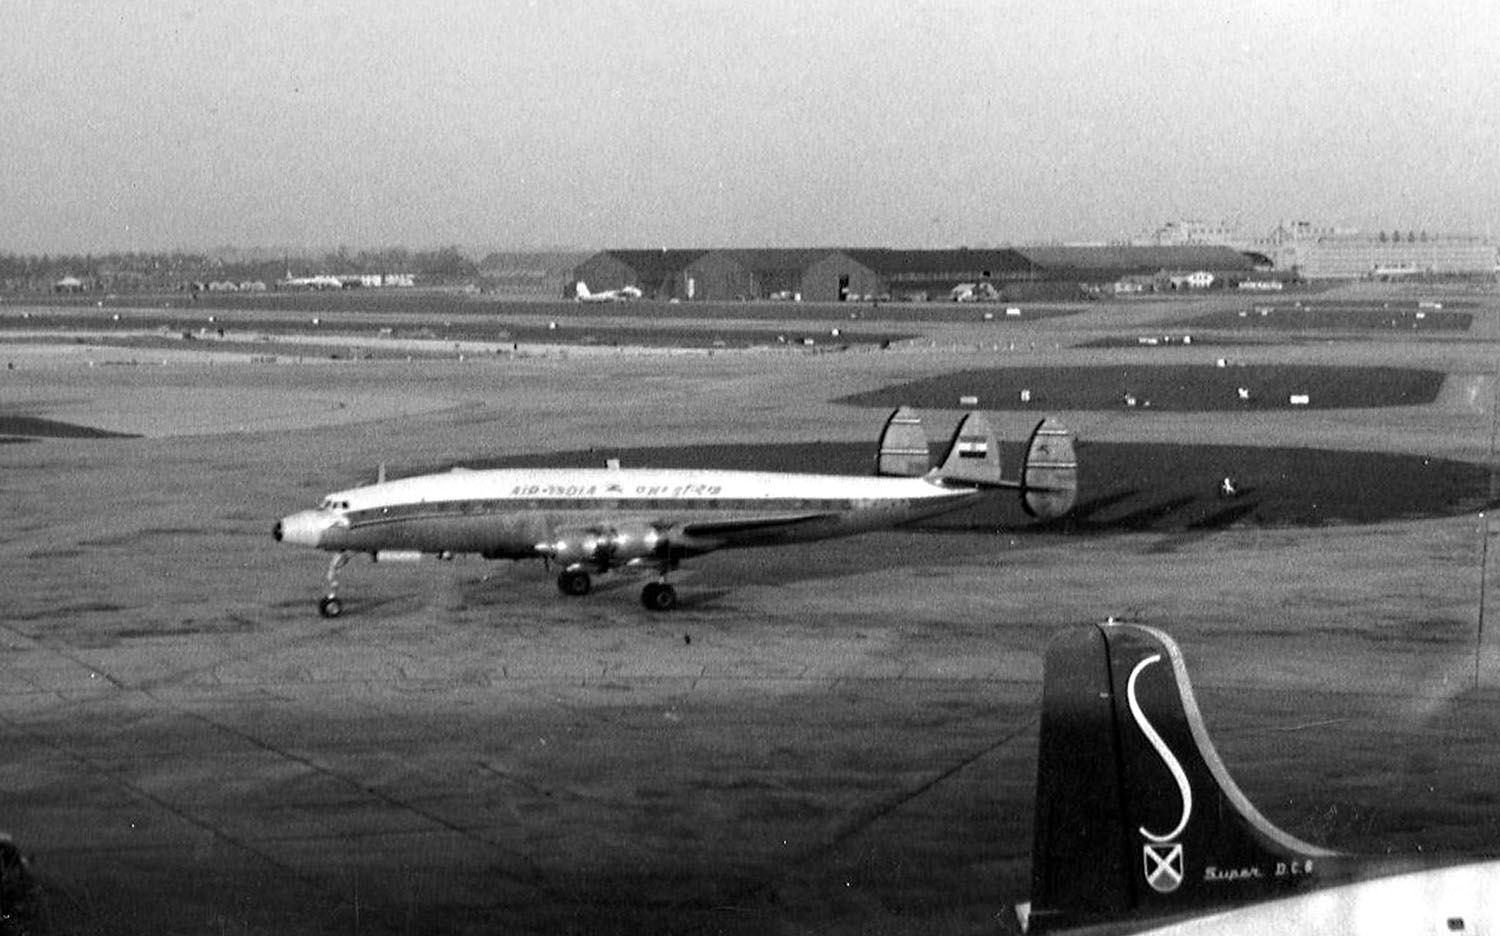 The Kashmir Princess was a chartered Lockheed L-749A Constellation aircraft owned by Air India. On 11 April 1955, it was damaged in midair by a bomb explosion and crashed into the South China Sea